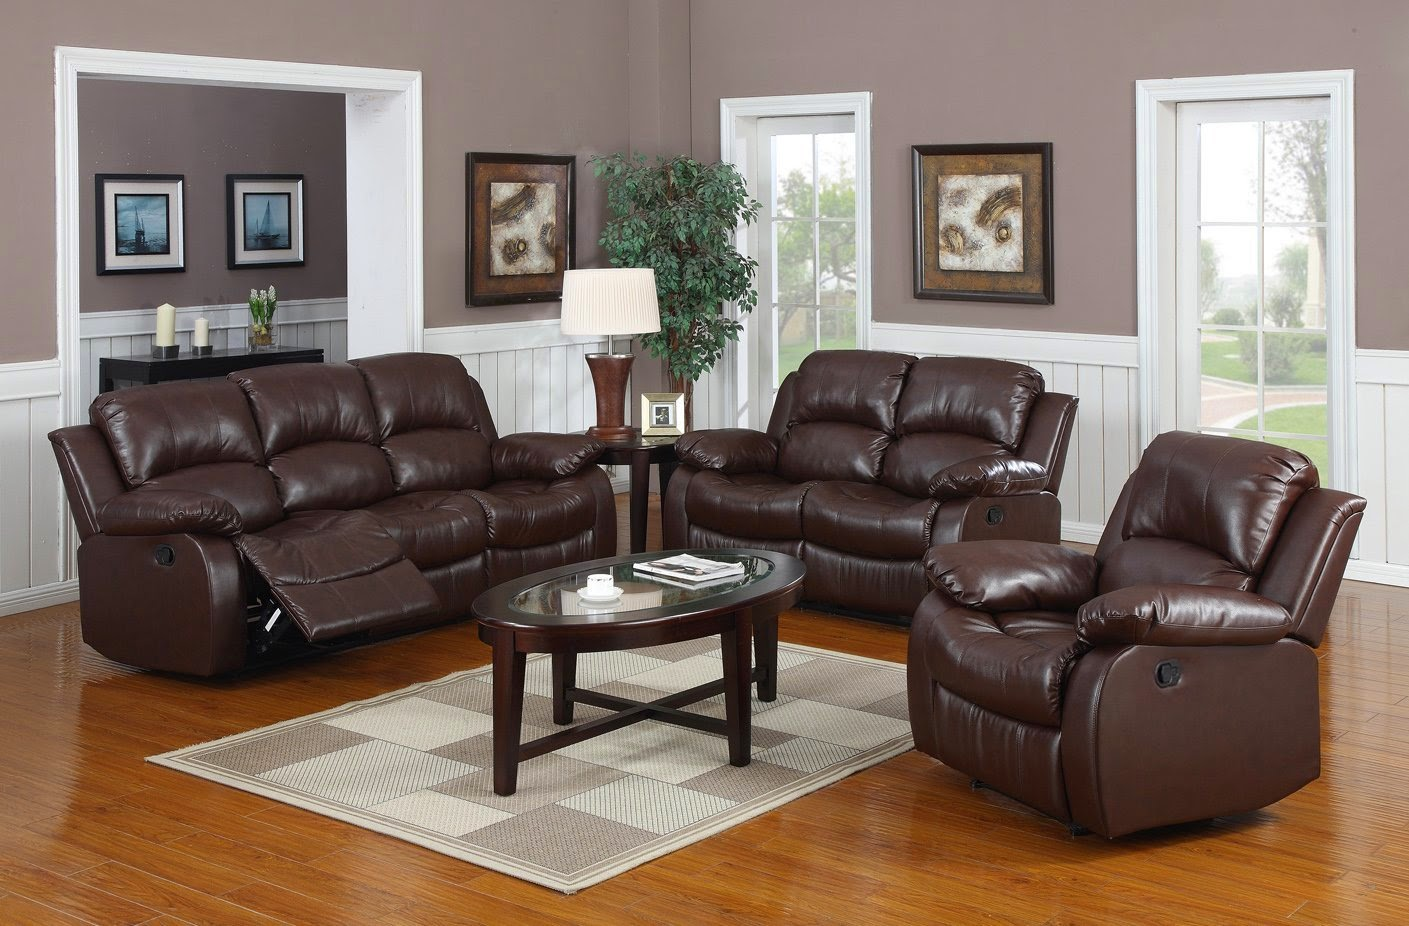 The best reclining leather sofa reviews leather recliner sofa sale uk Leather sofa and loveseat recliner